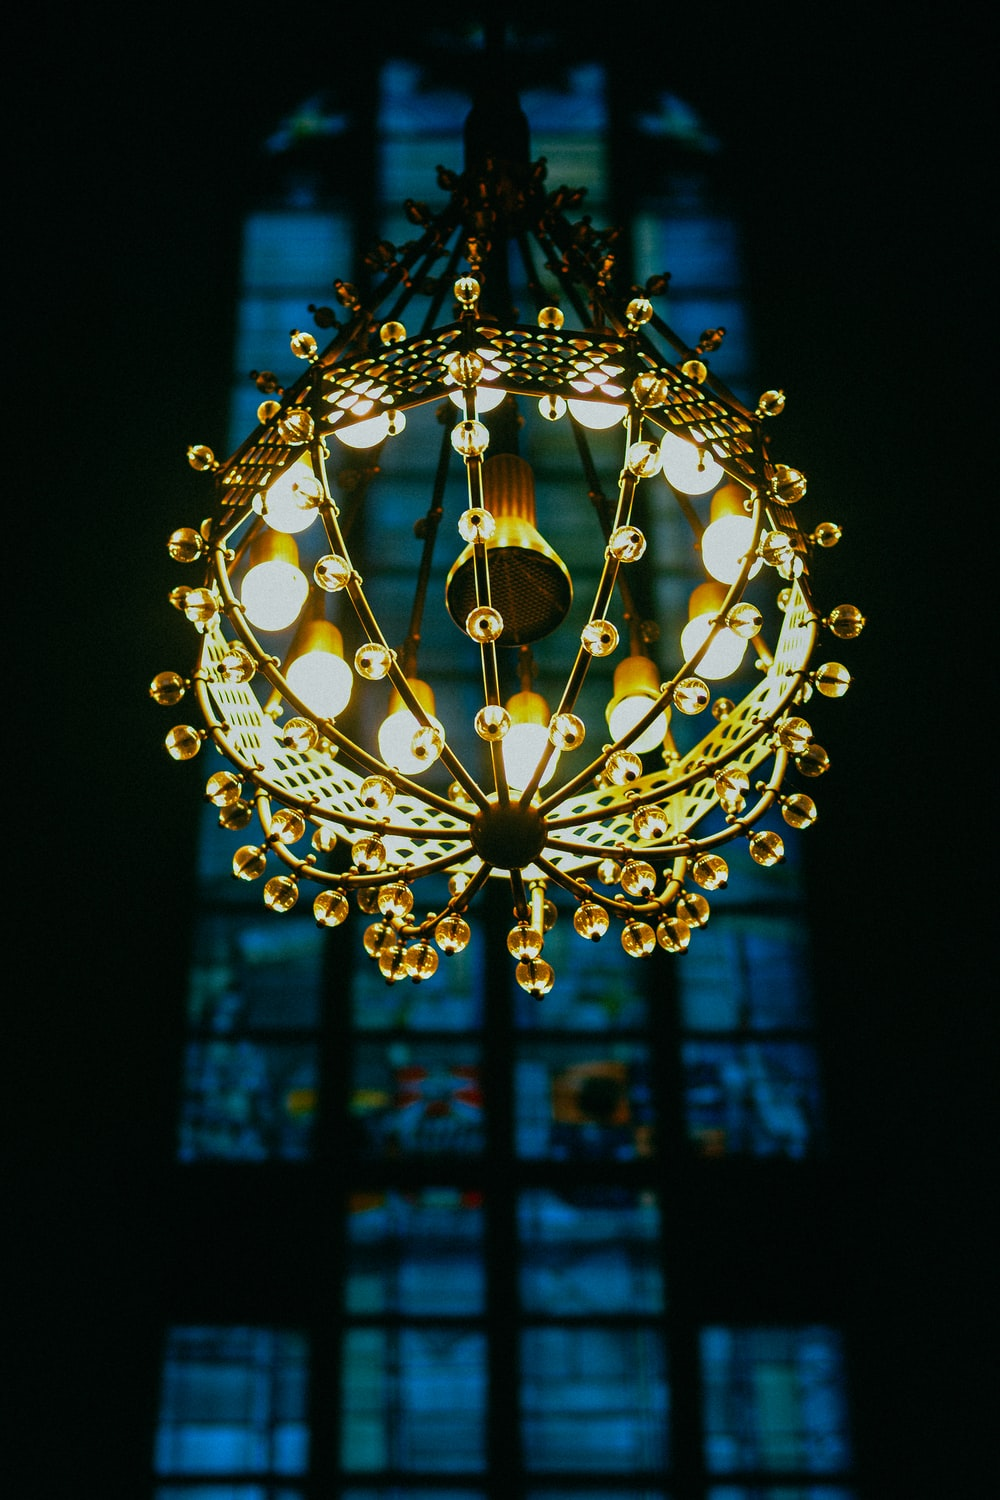 yellow lighted chandelier with stained glass window background